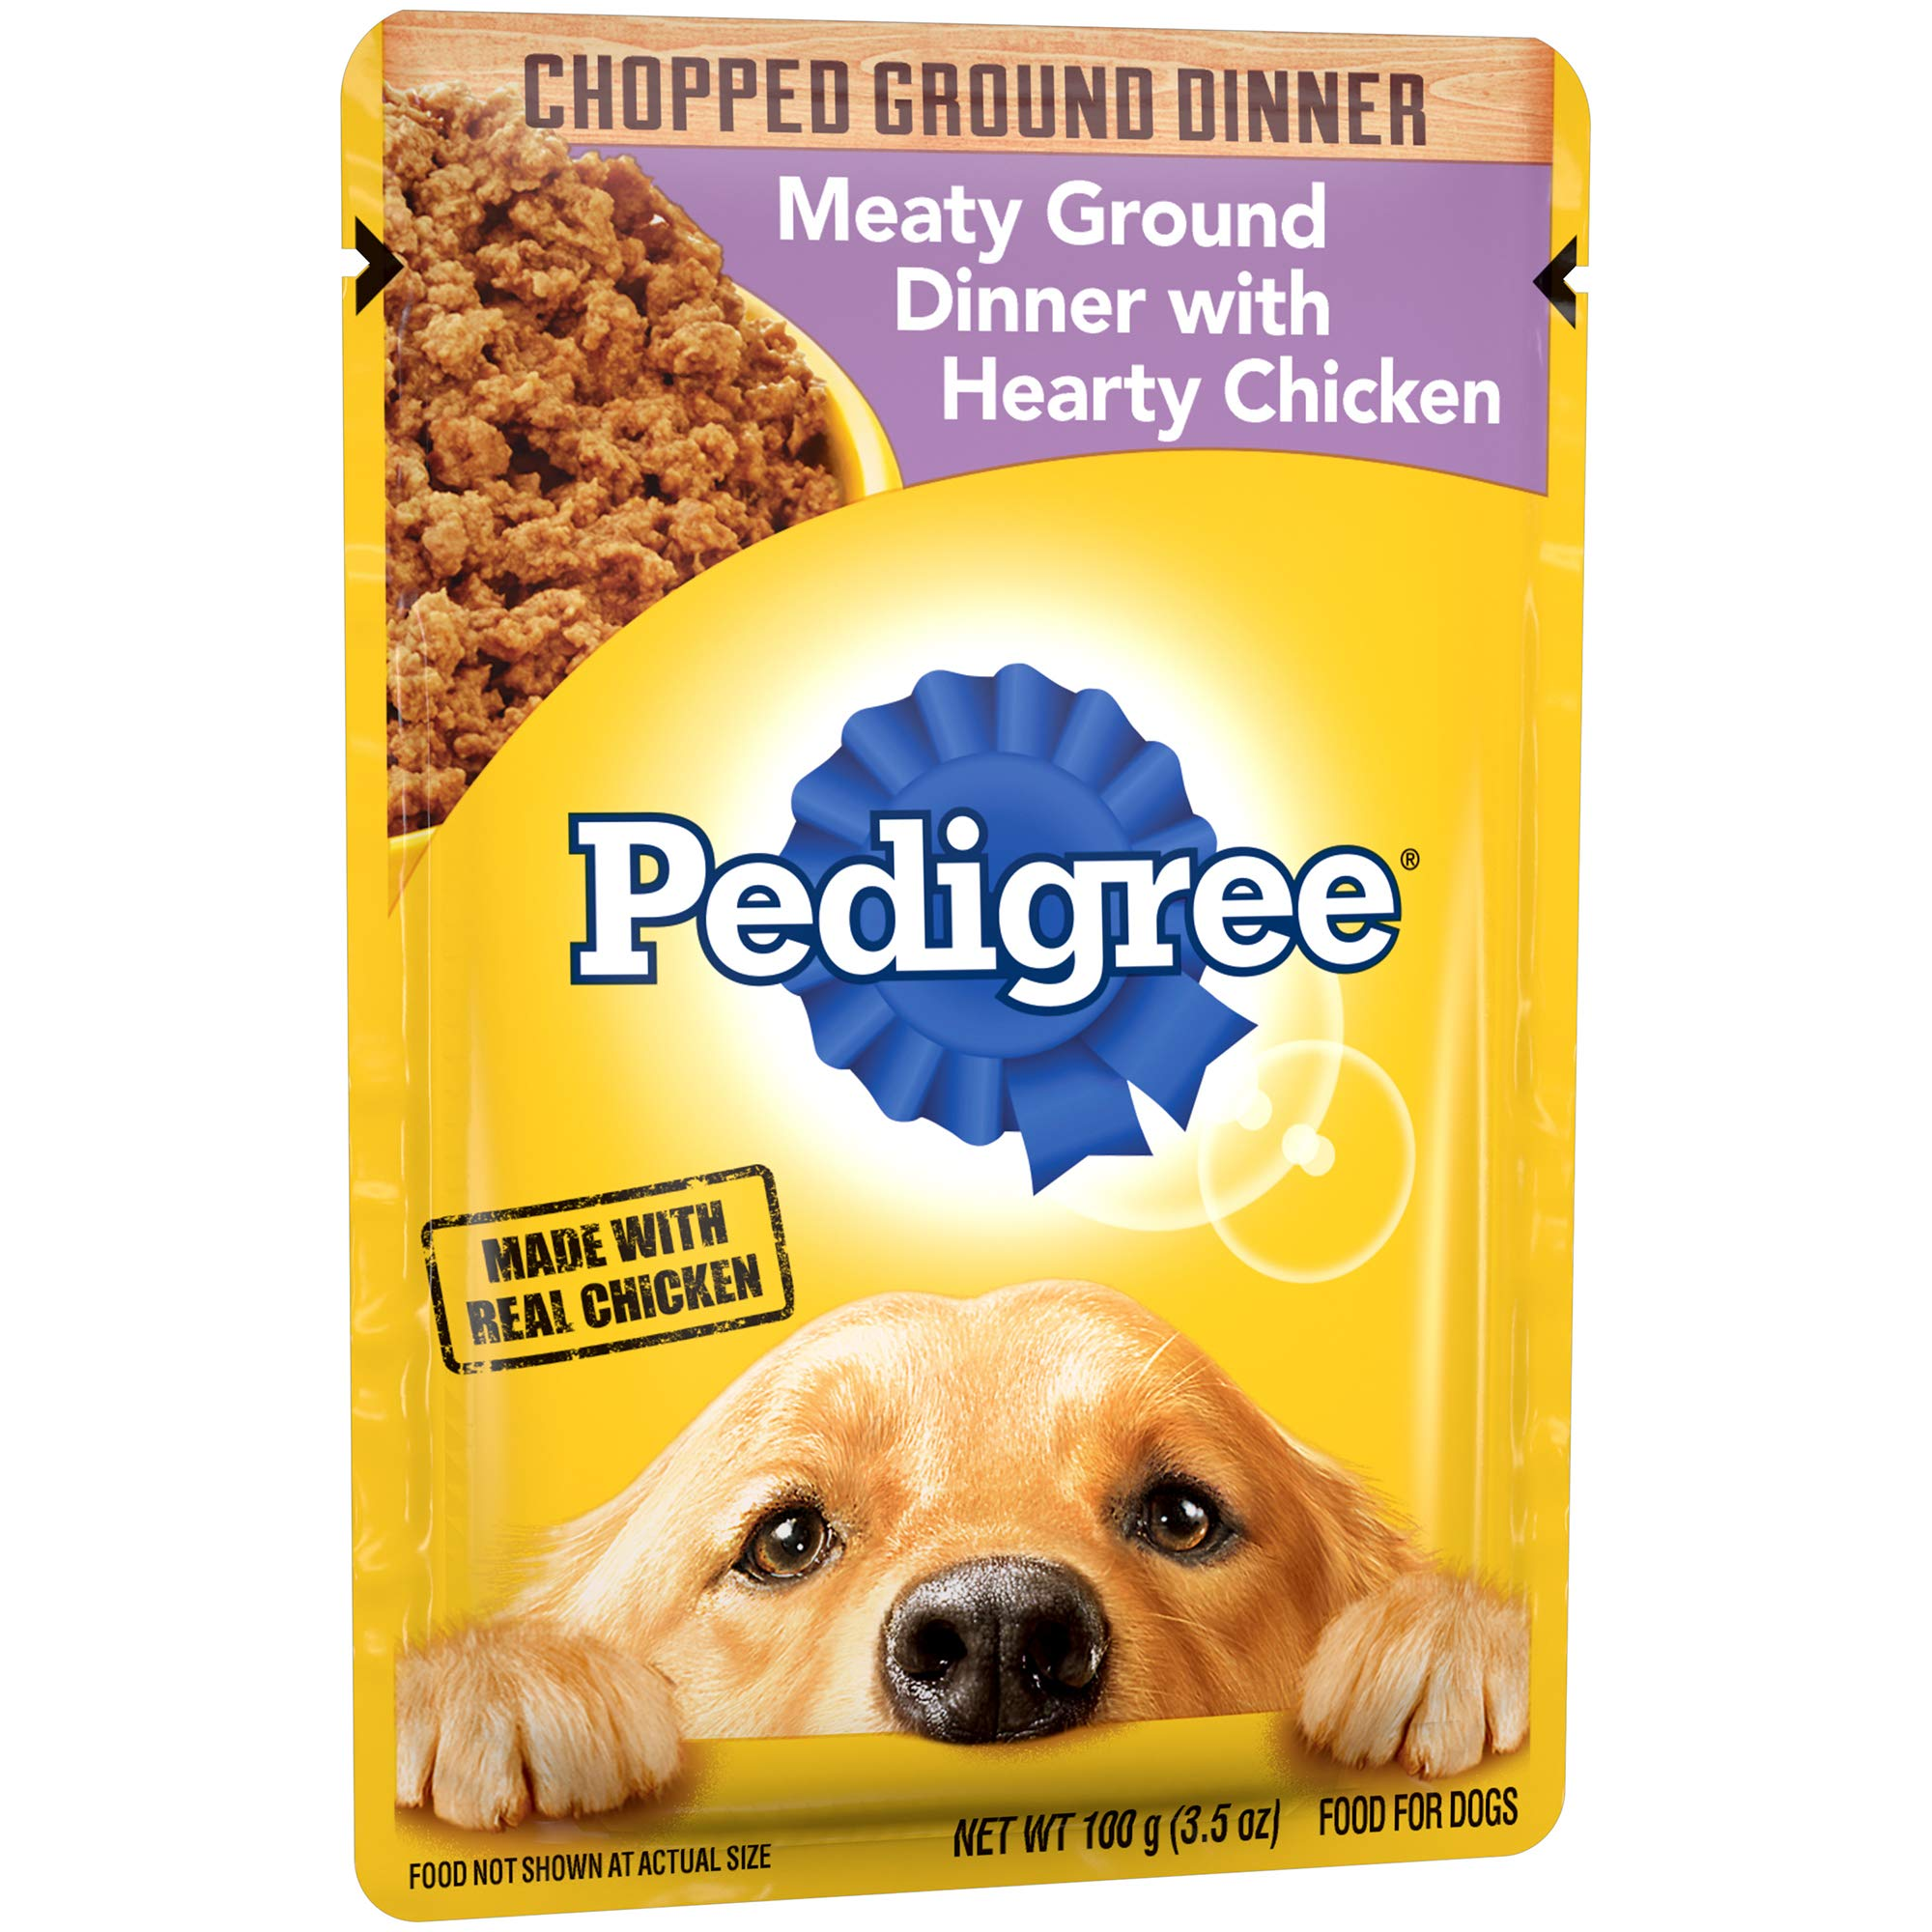 PEDIGREE Adult Wet Dog Food Chopped Meaty Ground Dinner with Hearty Chicken, (16) 3.5 oz. Pouches by Pedigree